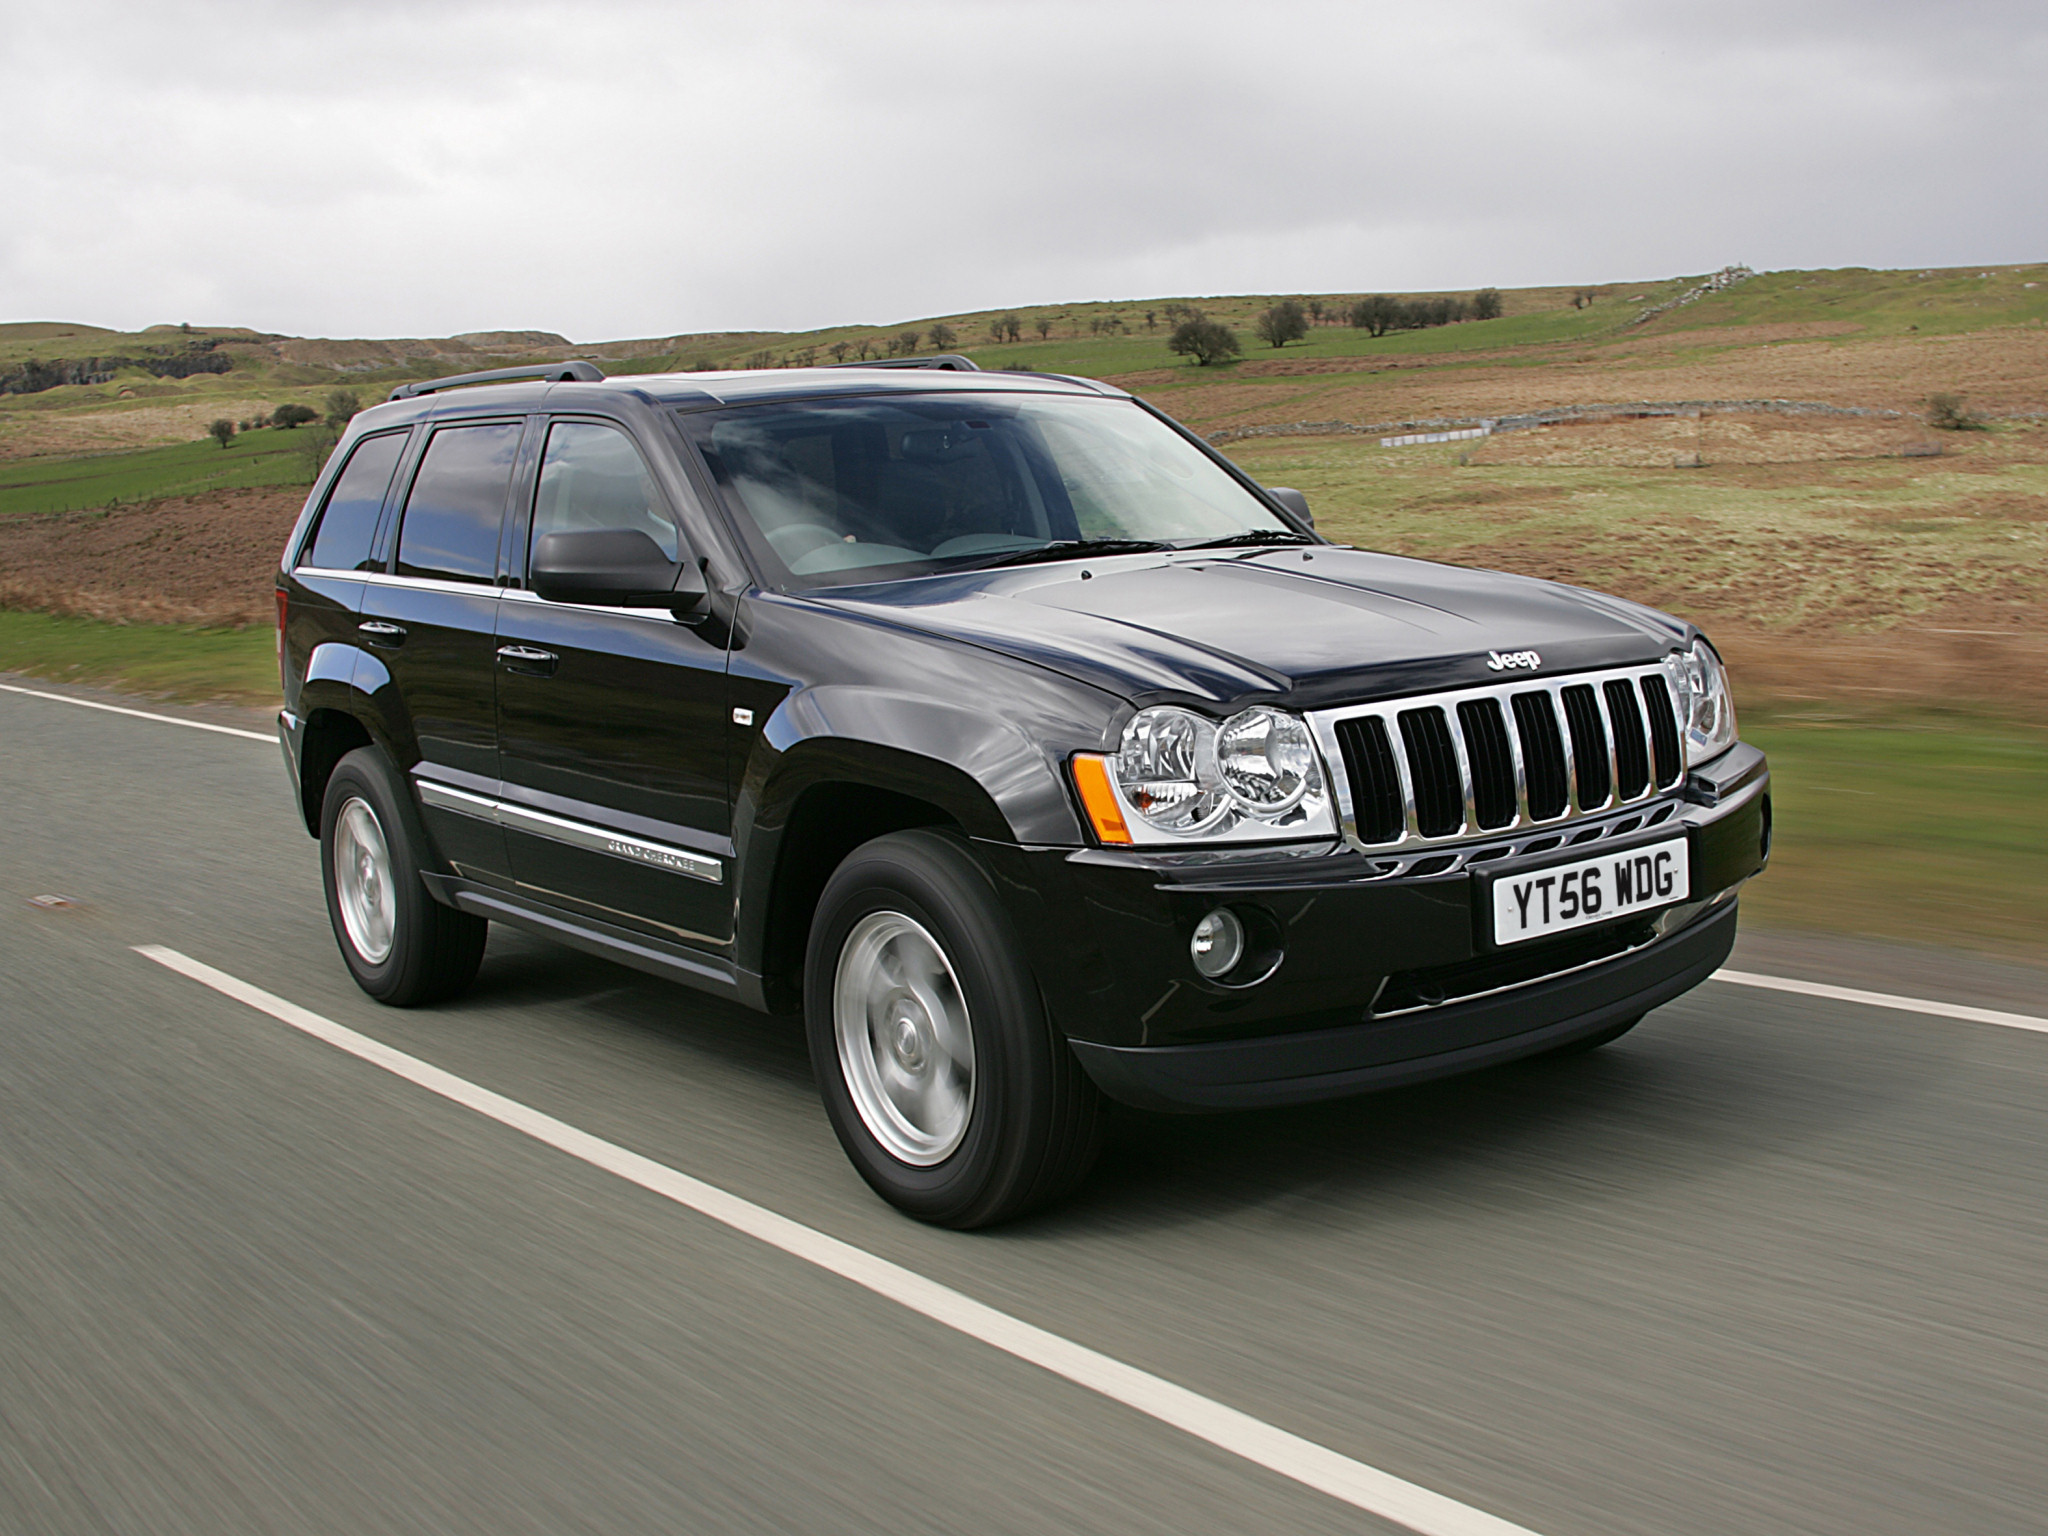 jeep grand cherokee 2005 jeep grand cherokee 2005 photo 06 car in. Black Bedroom Furniture Sets. Home Design Ideas